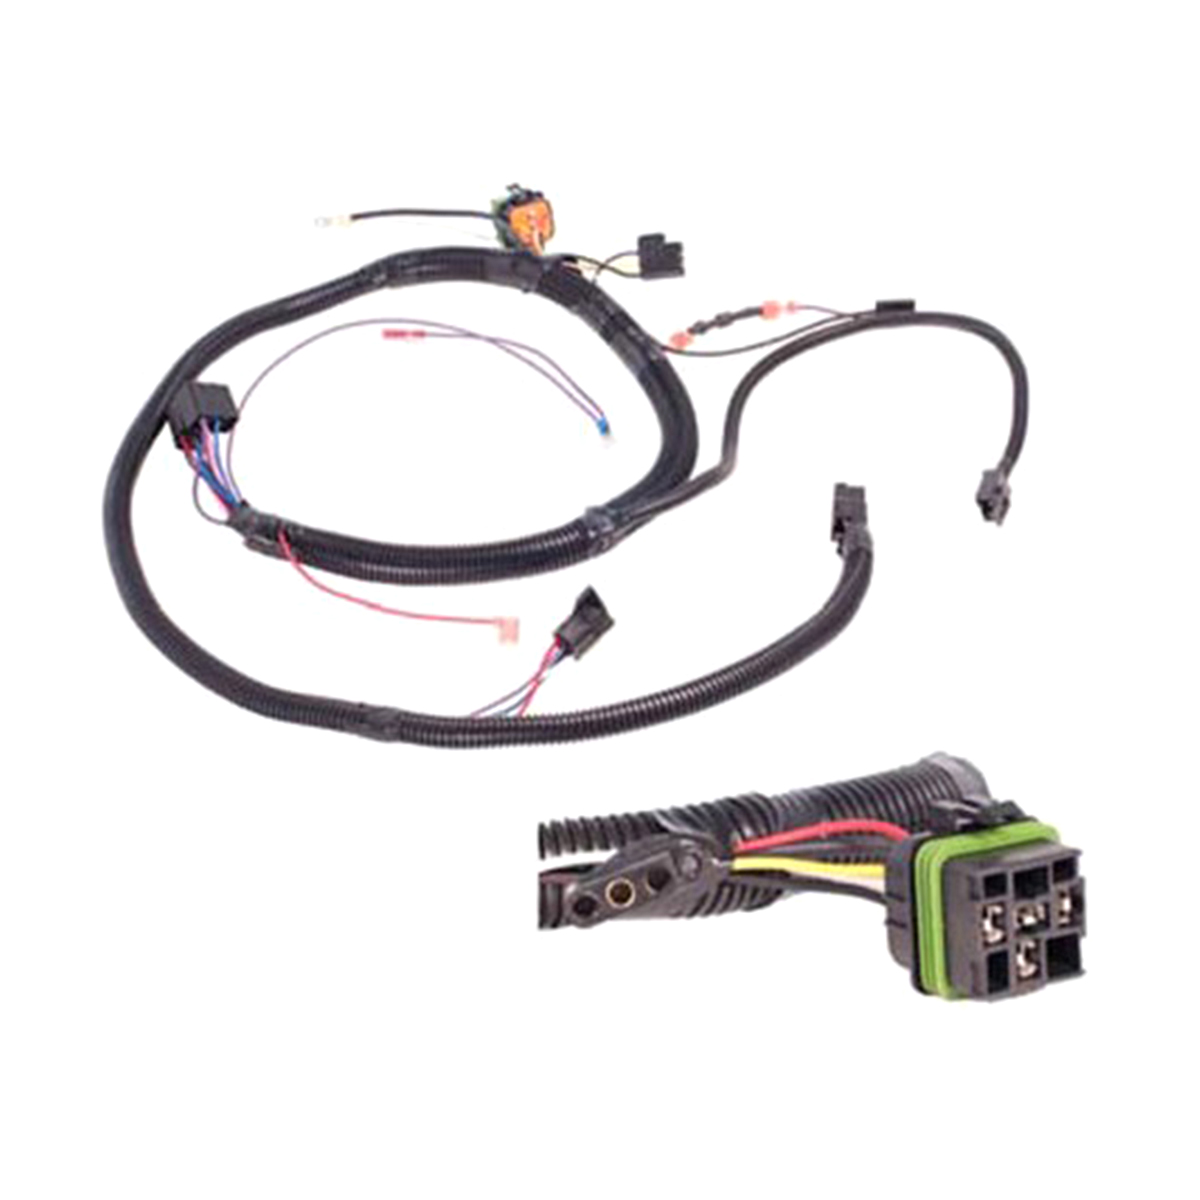 500052 500052 dixie chopper generac 33hp wiring harness dixie chopper wiring diagram at crackthecode.co